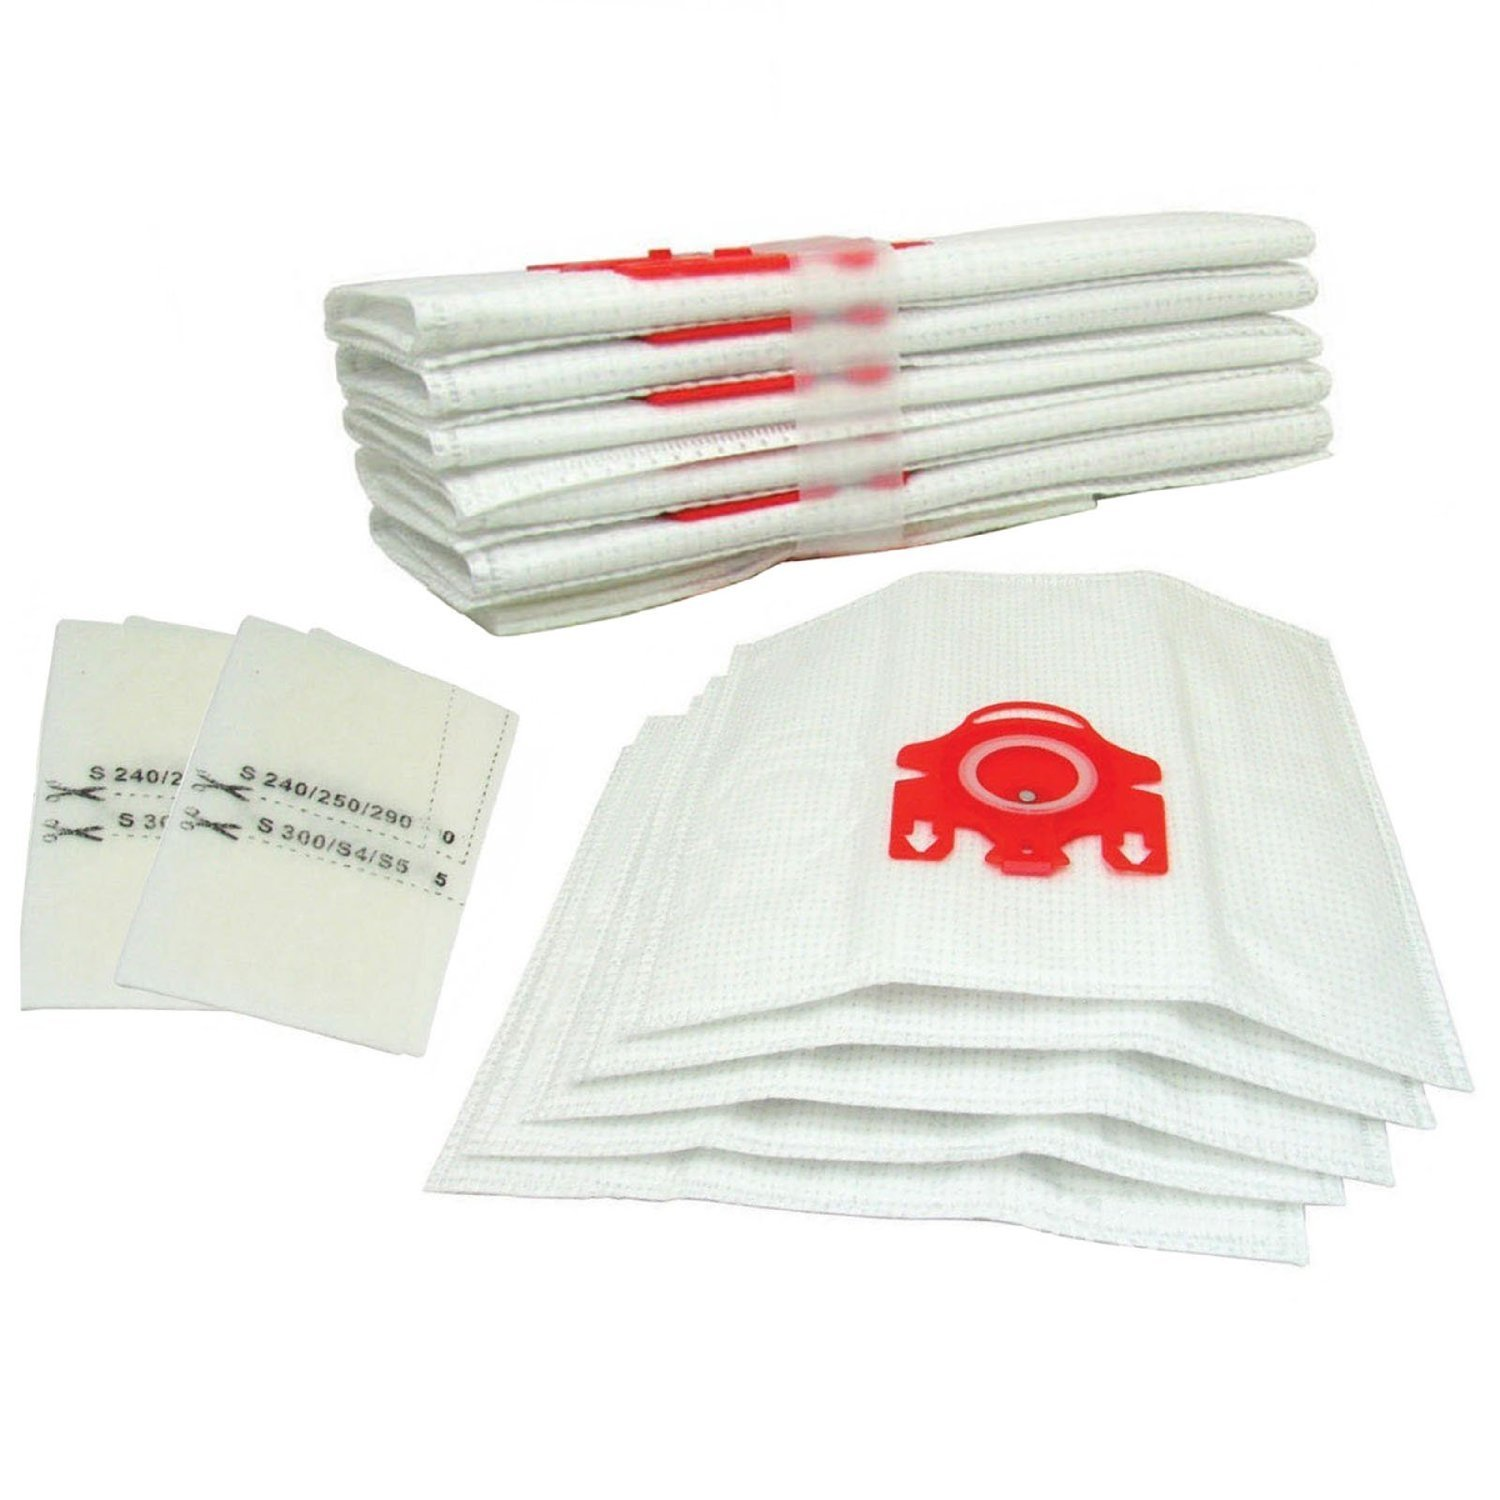 DUST BAGS FOR MIELE CAT /& DOG FJM S6220 PACK OF TEN S6000 SERIES